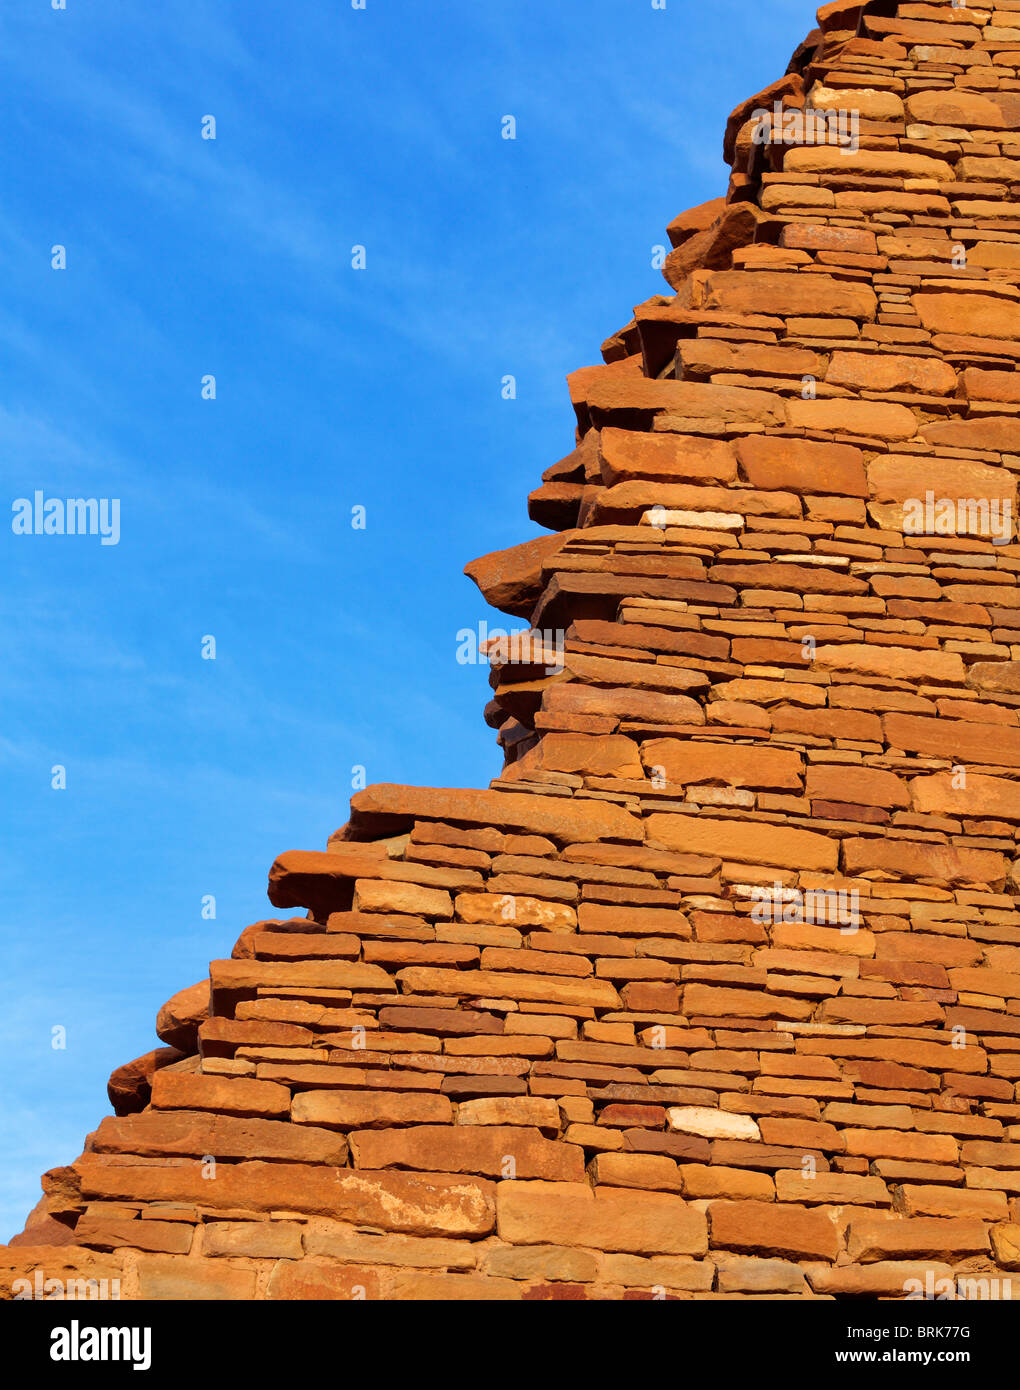 Wall detail in the ancient Pueblo Bonito village in Chaco Canyon, New Mexico, USA - Stock Image